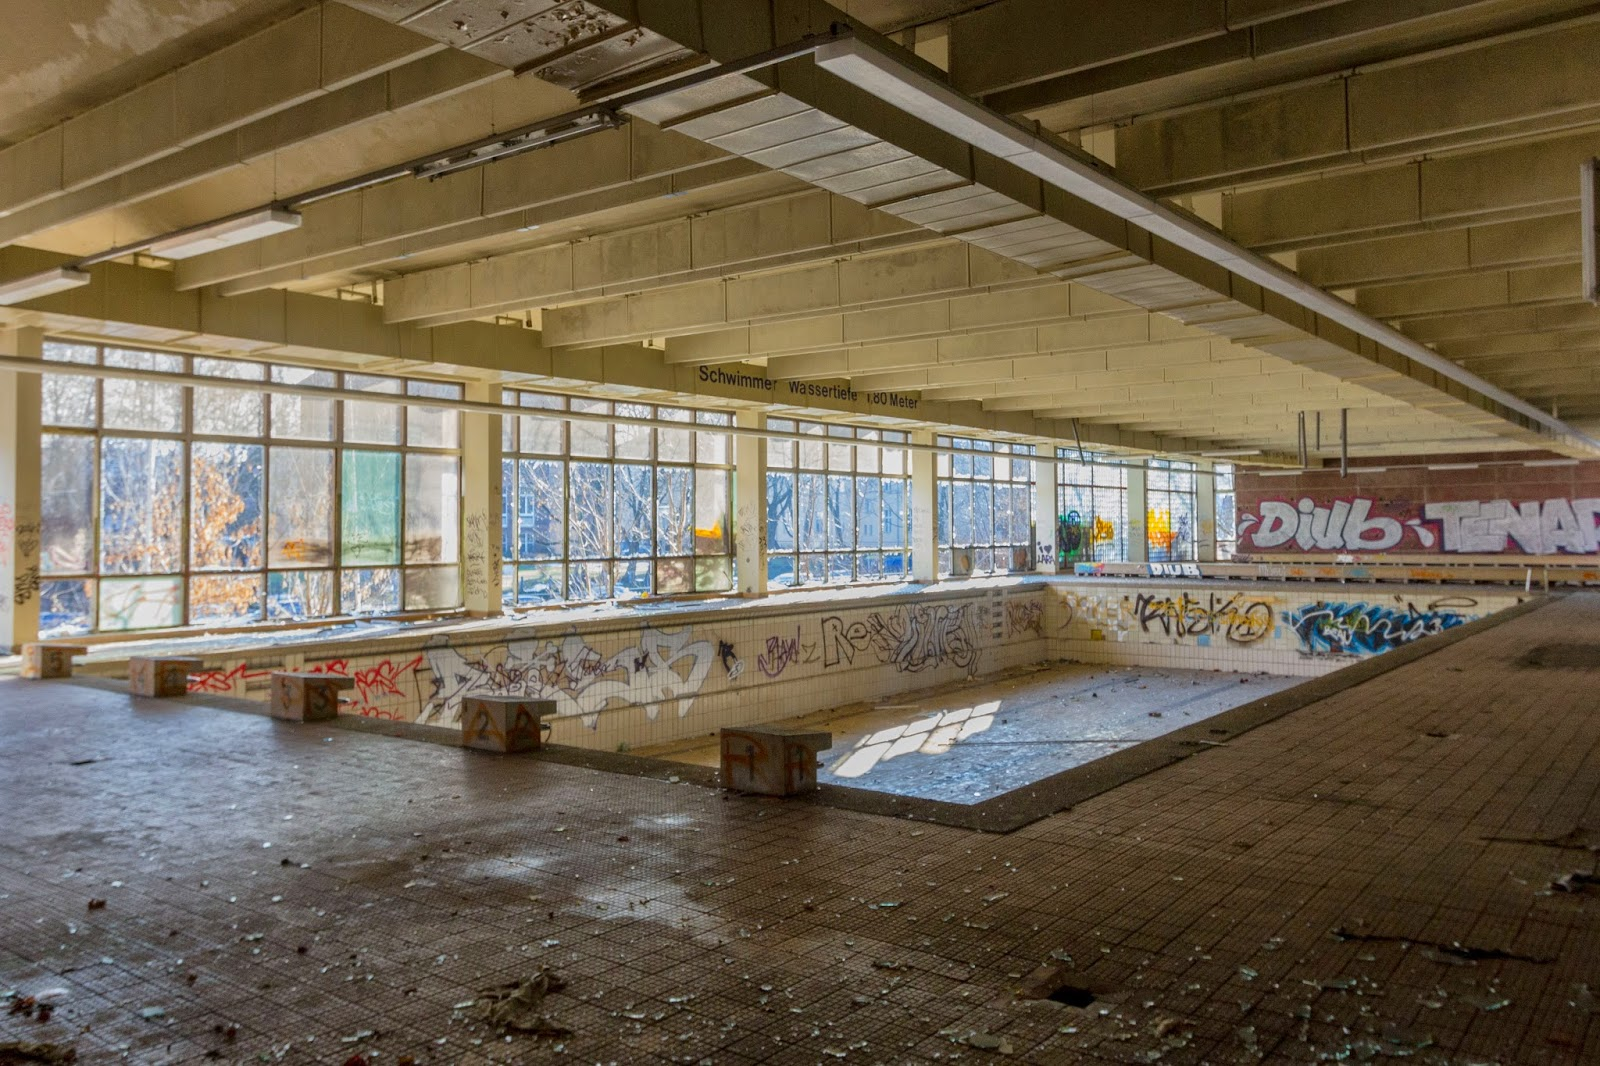 Swimmingpool Berlin Last Smash Pankow Schwimmhalle Abandoned Berlin